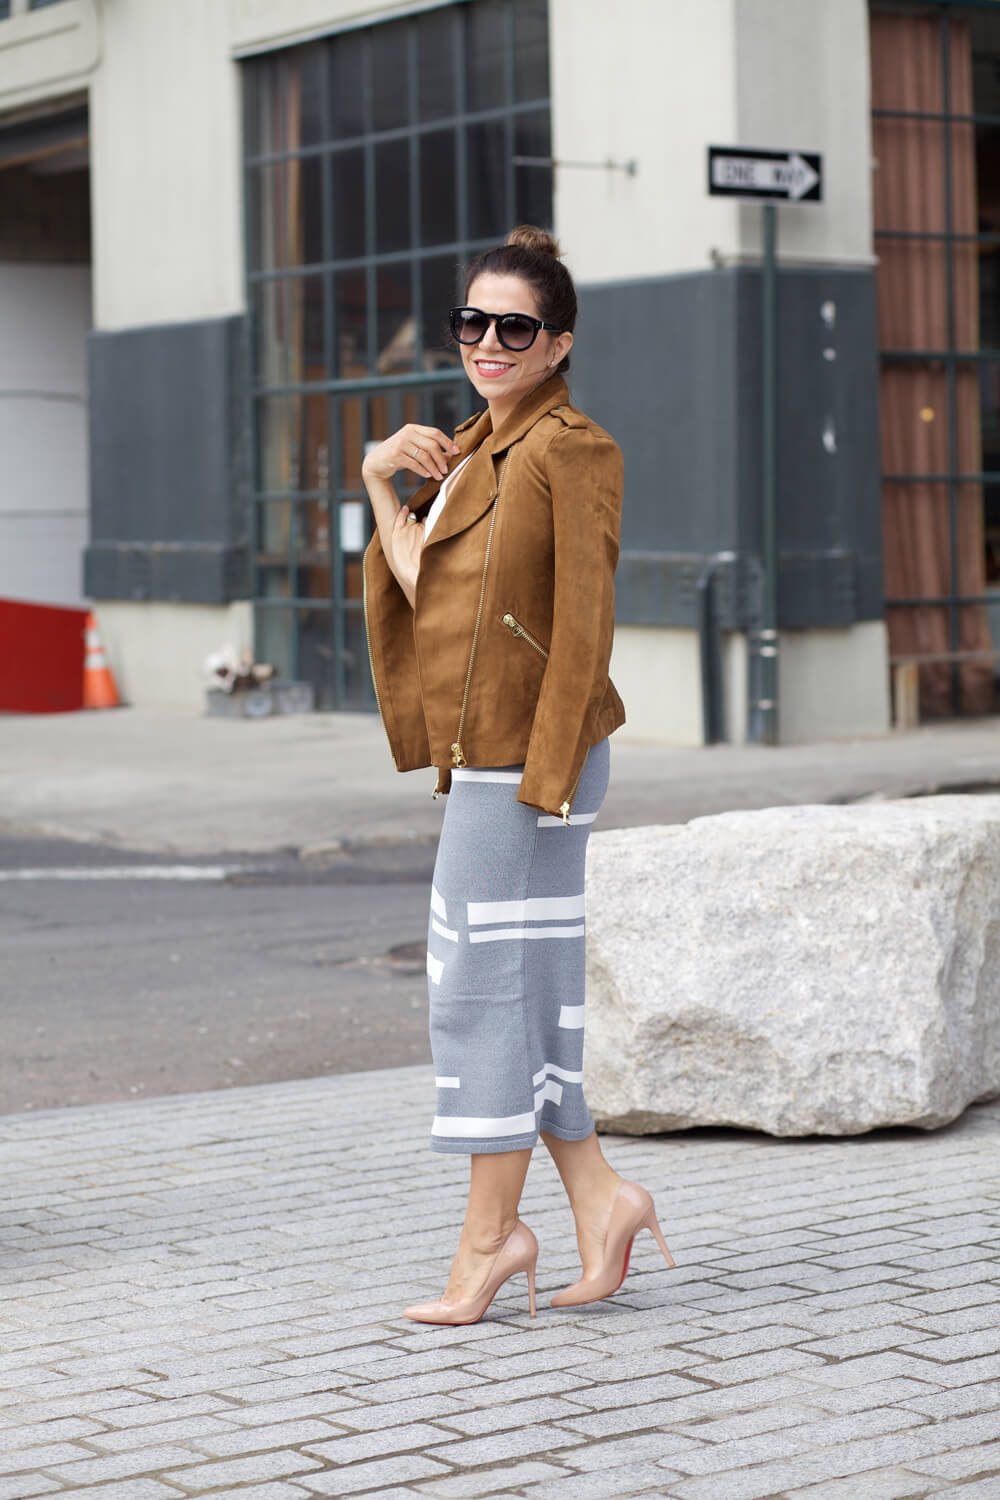 Hm faux suede jacket pencil skirt nude heels white cami black sunglasses chloe black mini drew dumbo corporate catwalk fall outfit ideas